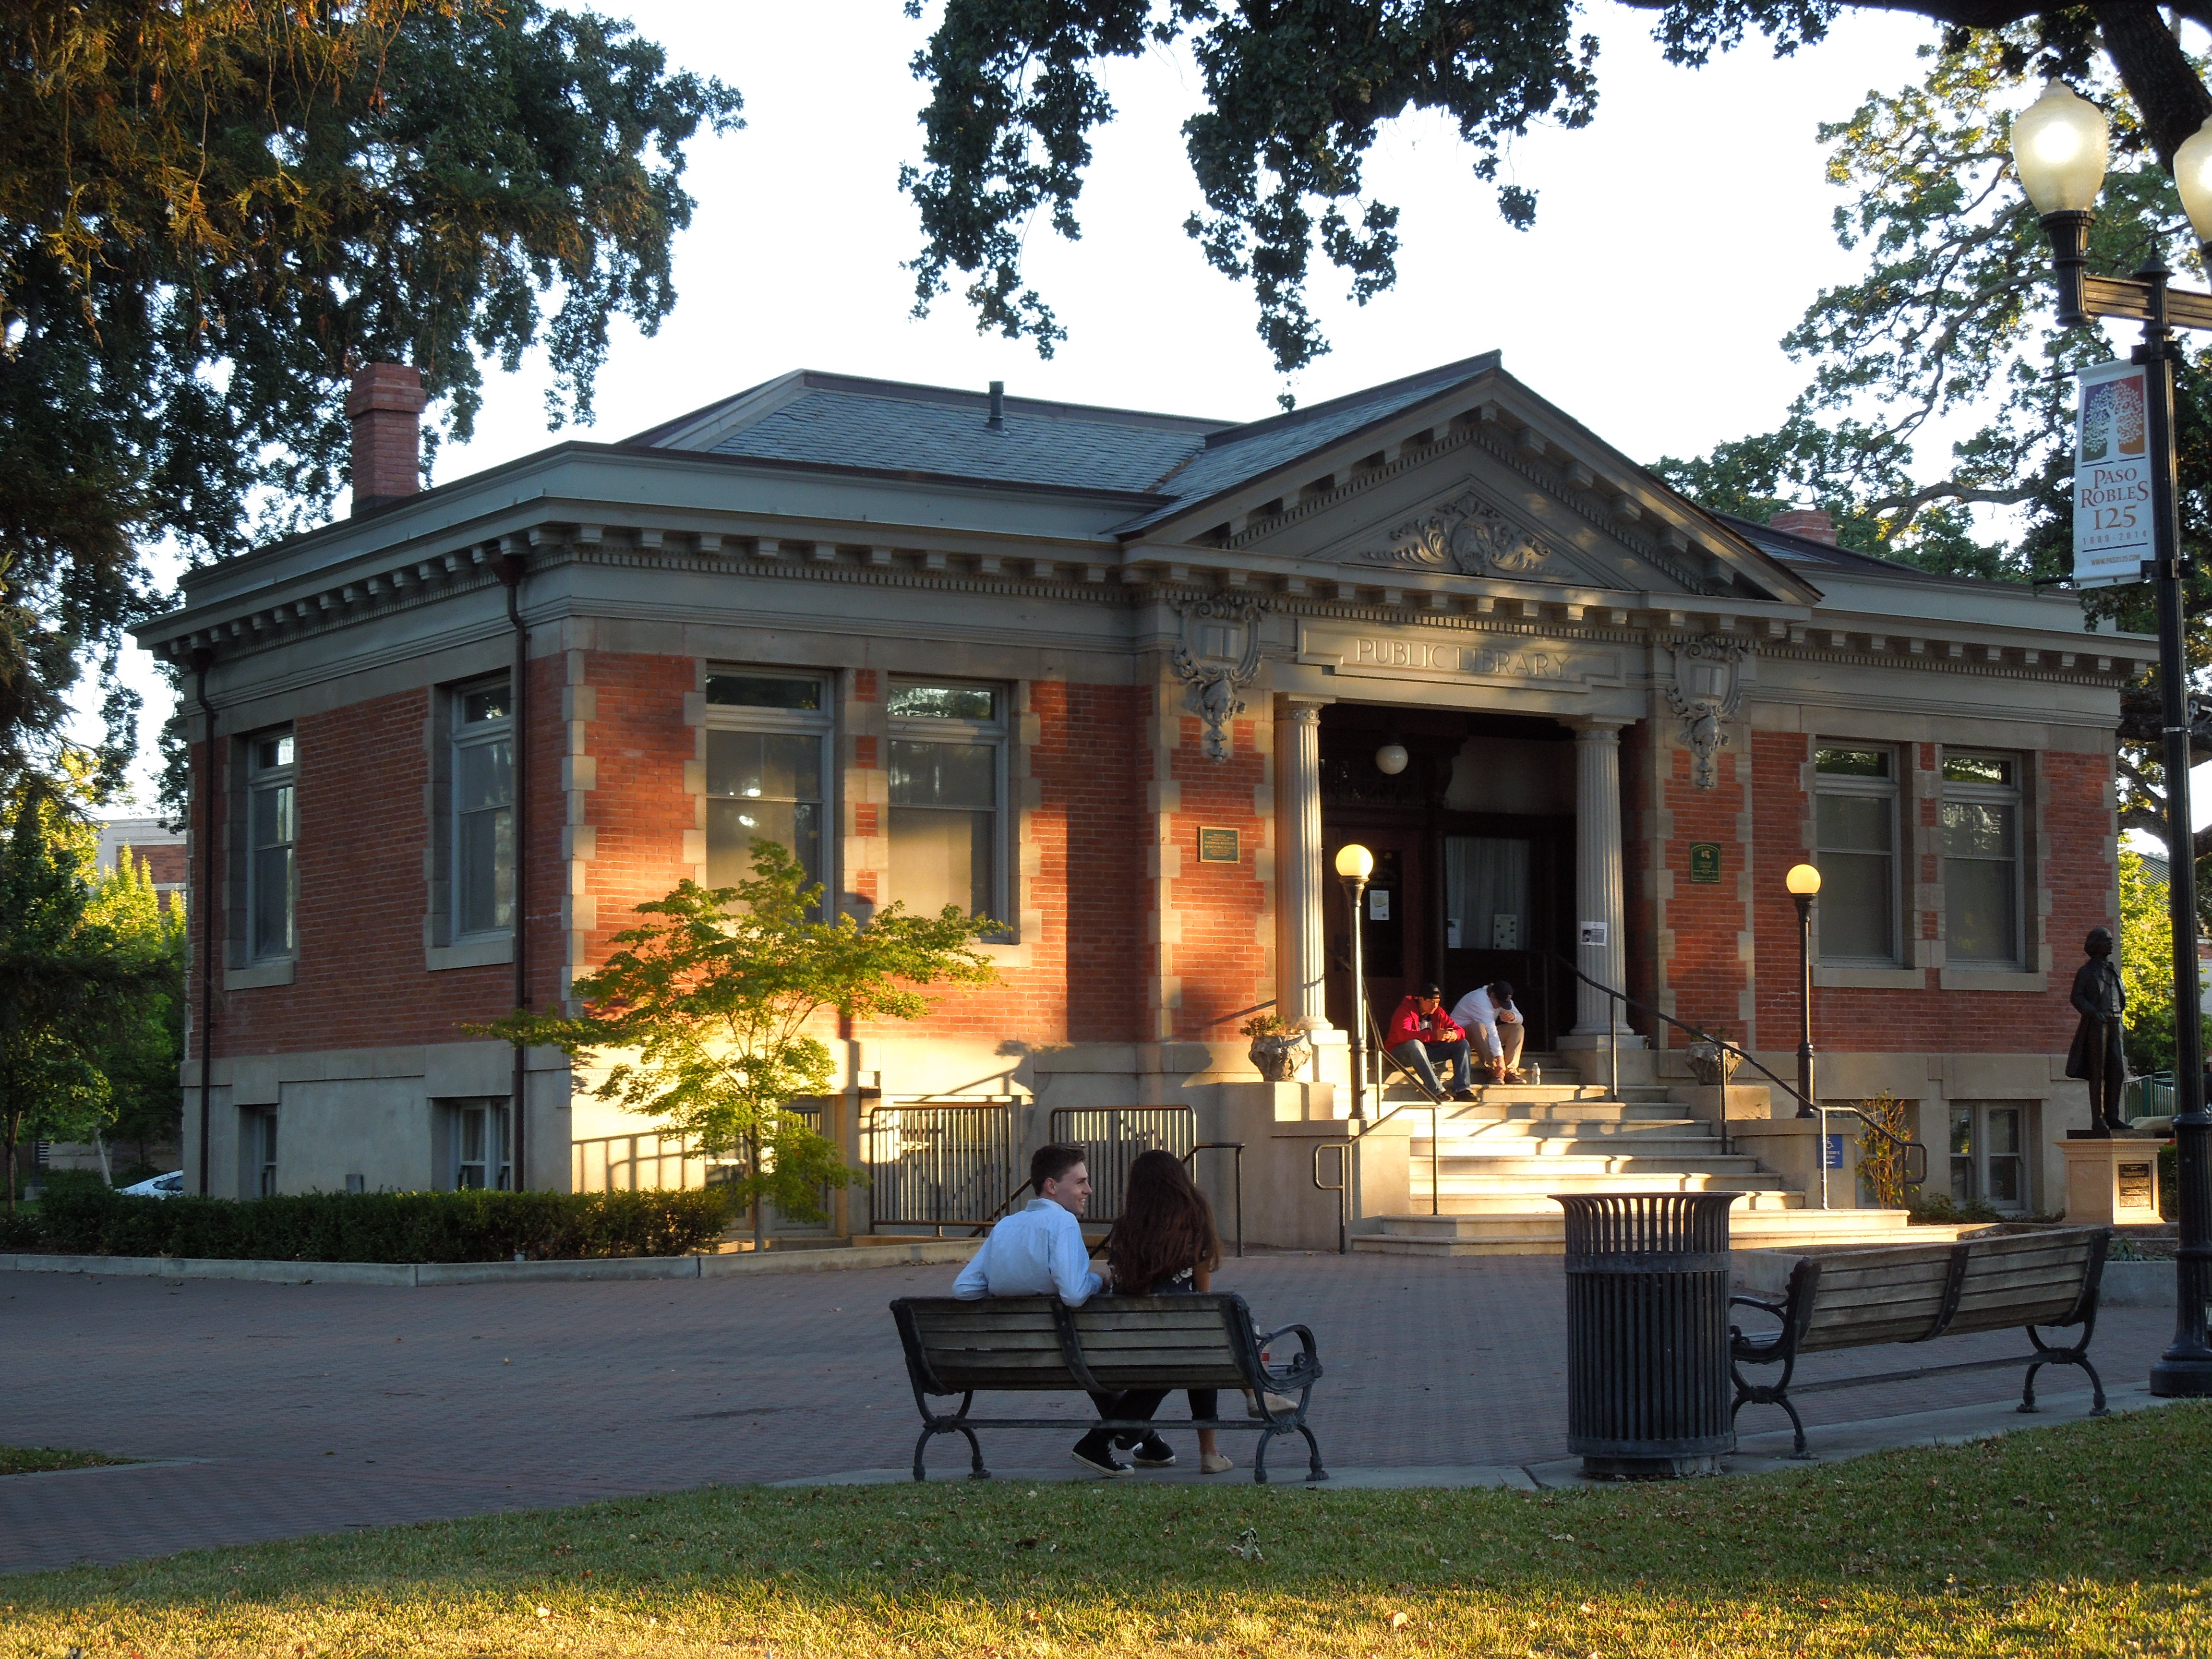 Old Carnegie Library Building in Paso Robles City Park